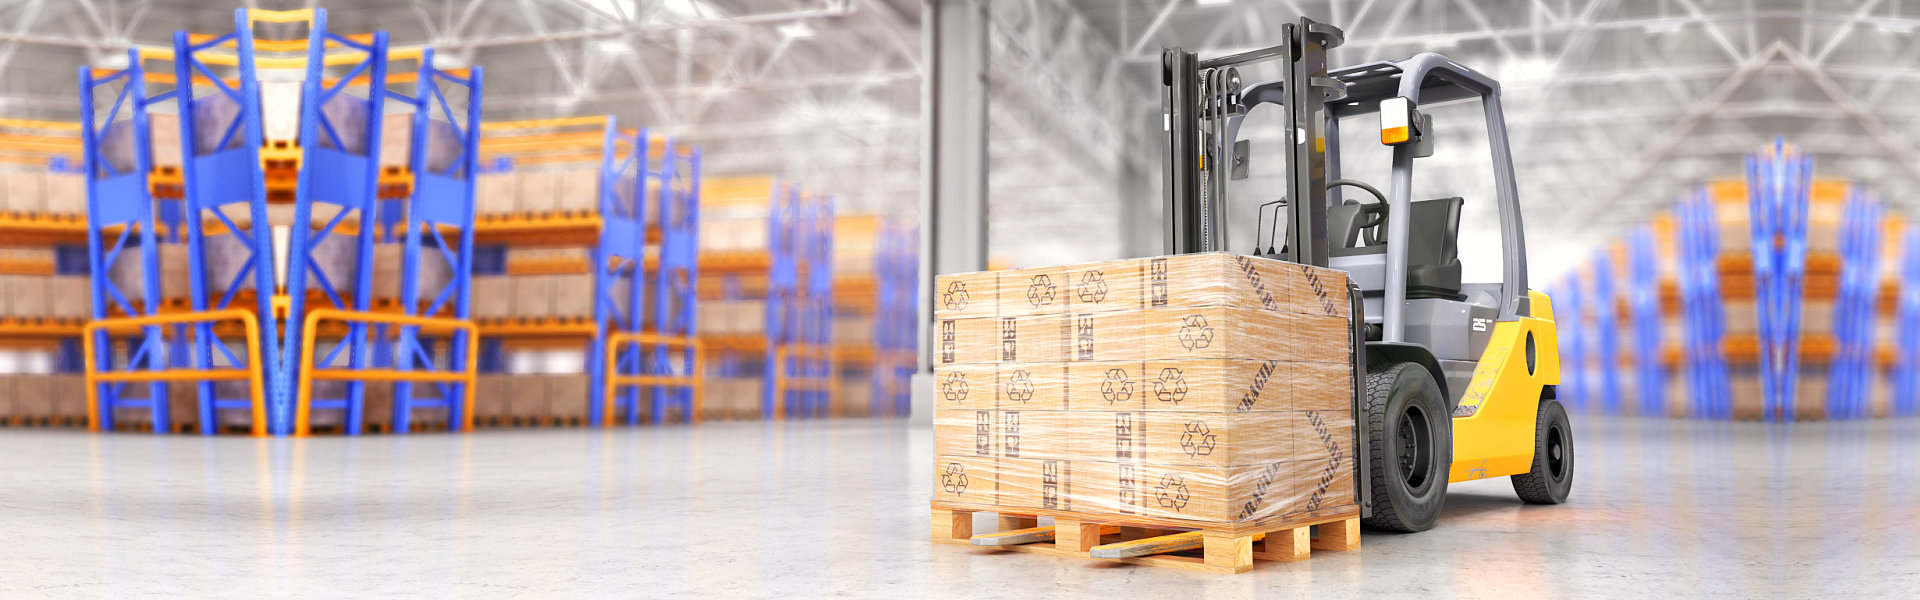 yellow forklift with cargo